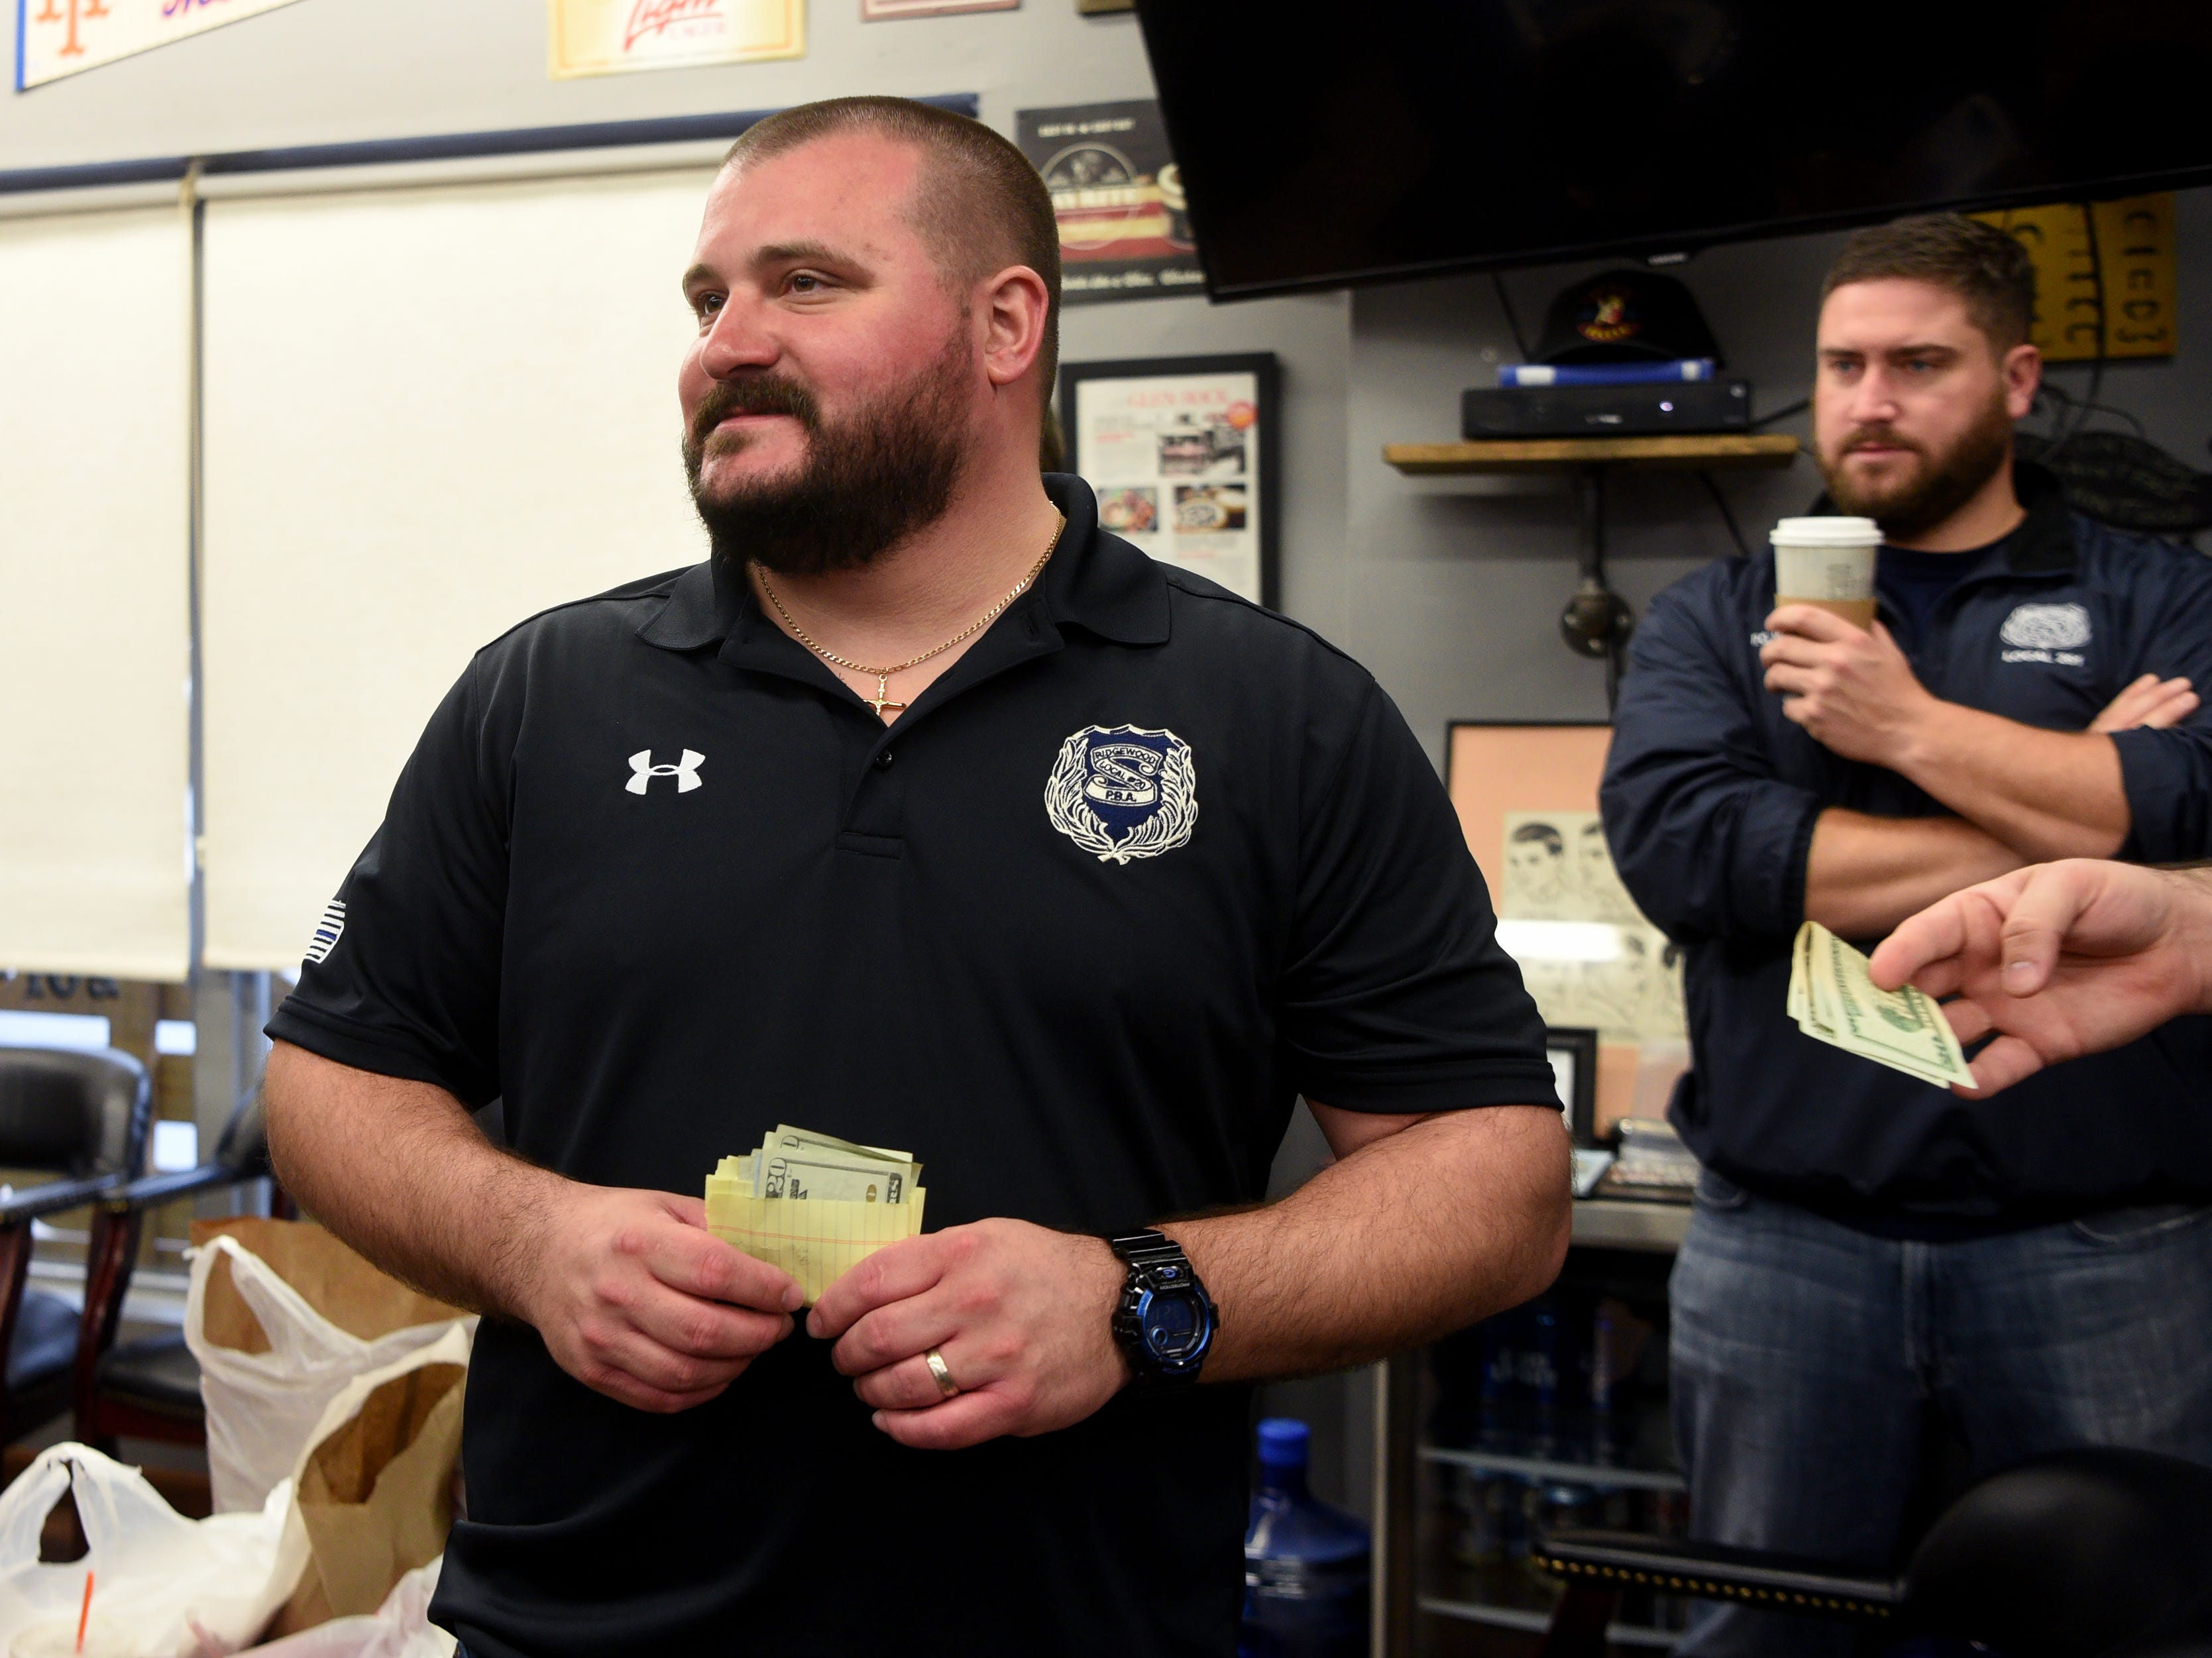 """Ridgewood police Patrolman Sean Amoruso, chairman of the """"Shave-Off,"""" collects money for the event. The Ridgewood, Wyckoff and Franklin Lakes PBAs held their No-Shave November Annual Shave-Off at Iconic Barber Shop in Glen Rock on Sunday, December 2, 2018. The money raised will help a Ridgewood family pay medical bills. Iconic Barber Shop also donated 100% percent of the proceeds from Sunday morning's Shave-Off."""